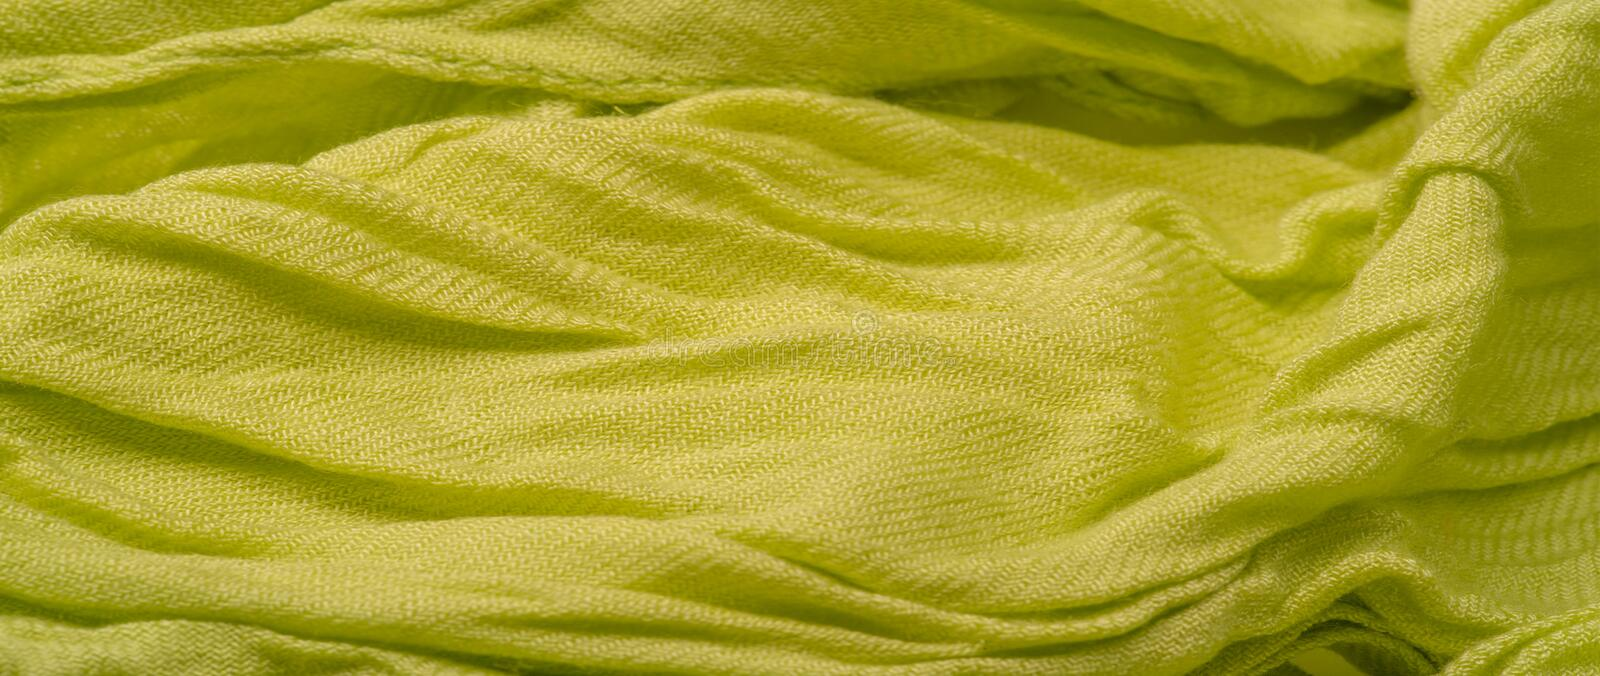 Texture, background, pattern, postcard, silk fabric, light green color, aureolin, artificially wrinkled fabric, wrinkled texture,. Texture background pattern stock images